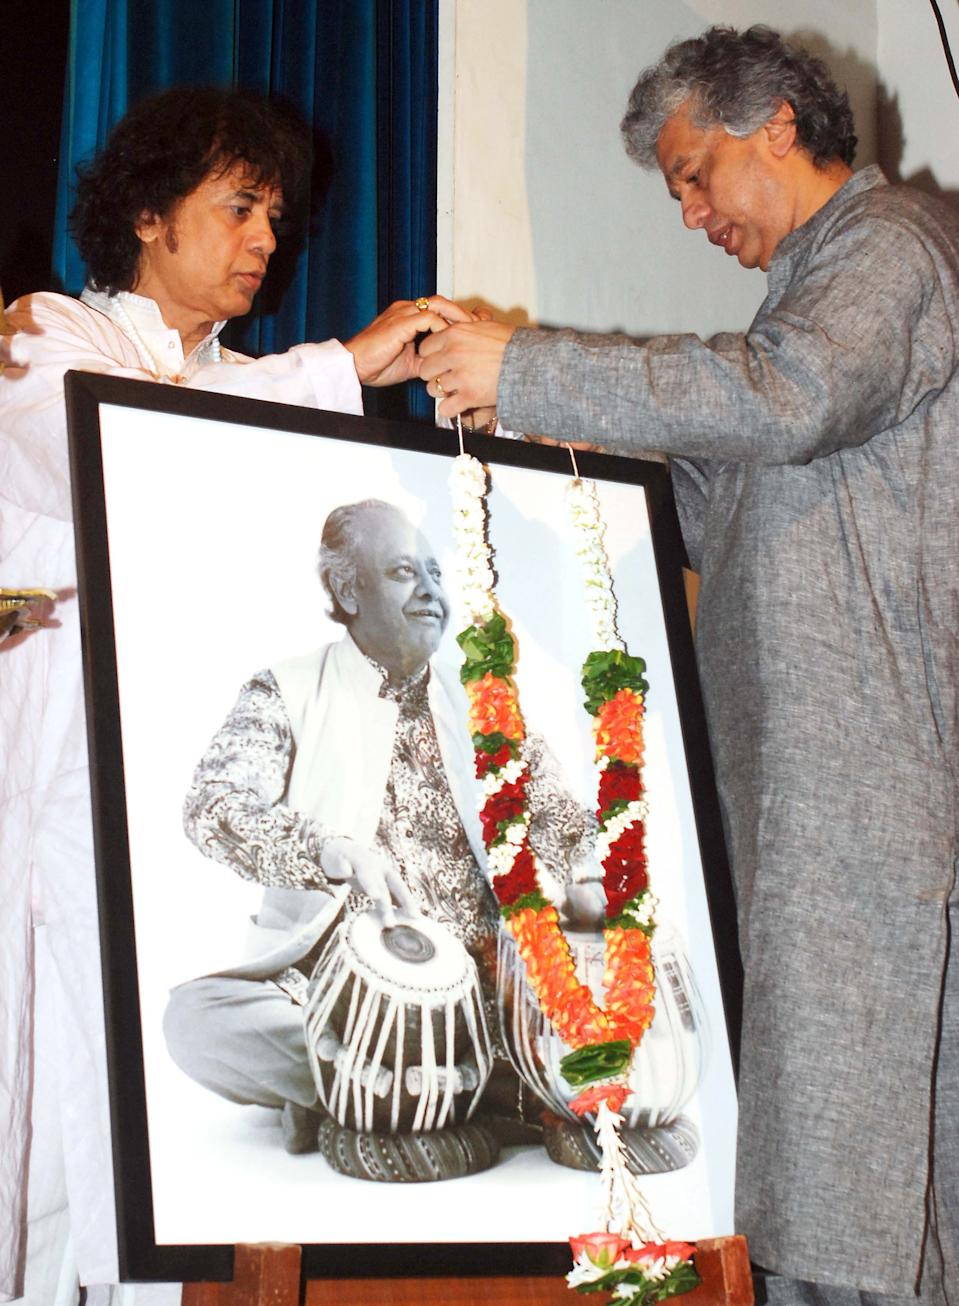 Ustad Allarakha Qureshi was best remembered for playing tabla alongside sitar maestro Ravi Shankar. His son Zakir Hussain walked on his footsteps to become a renowned table player as well.